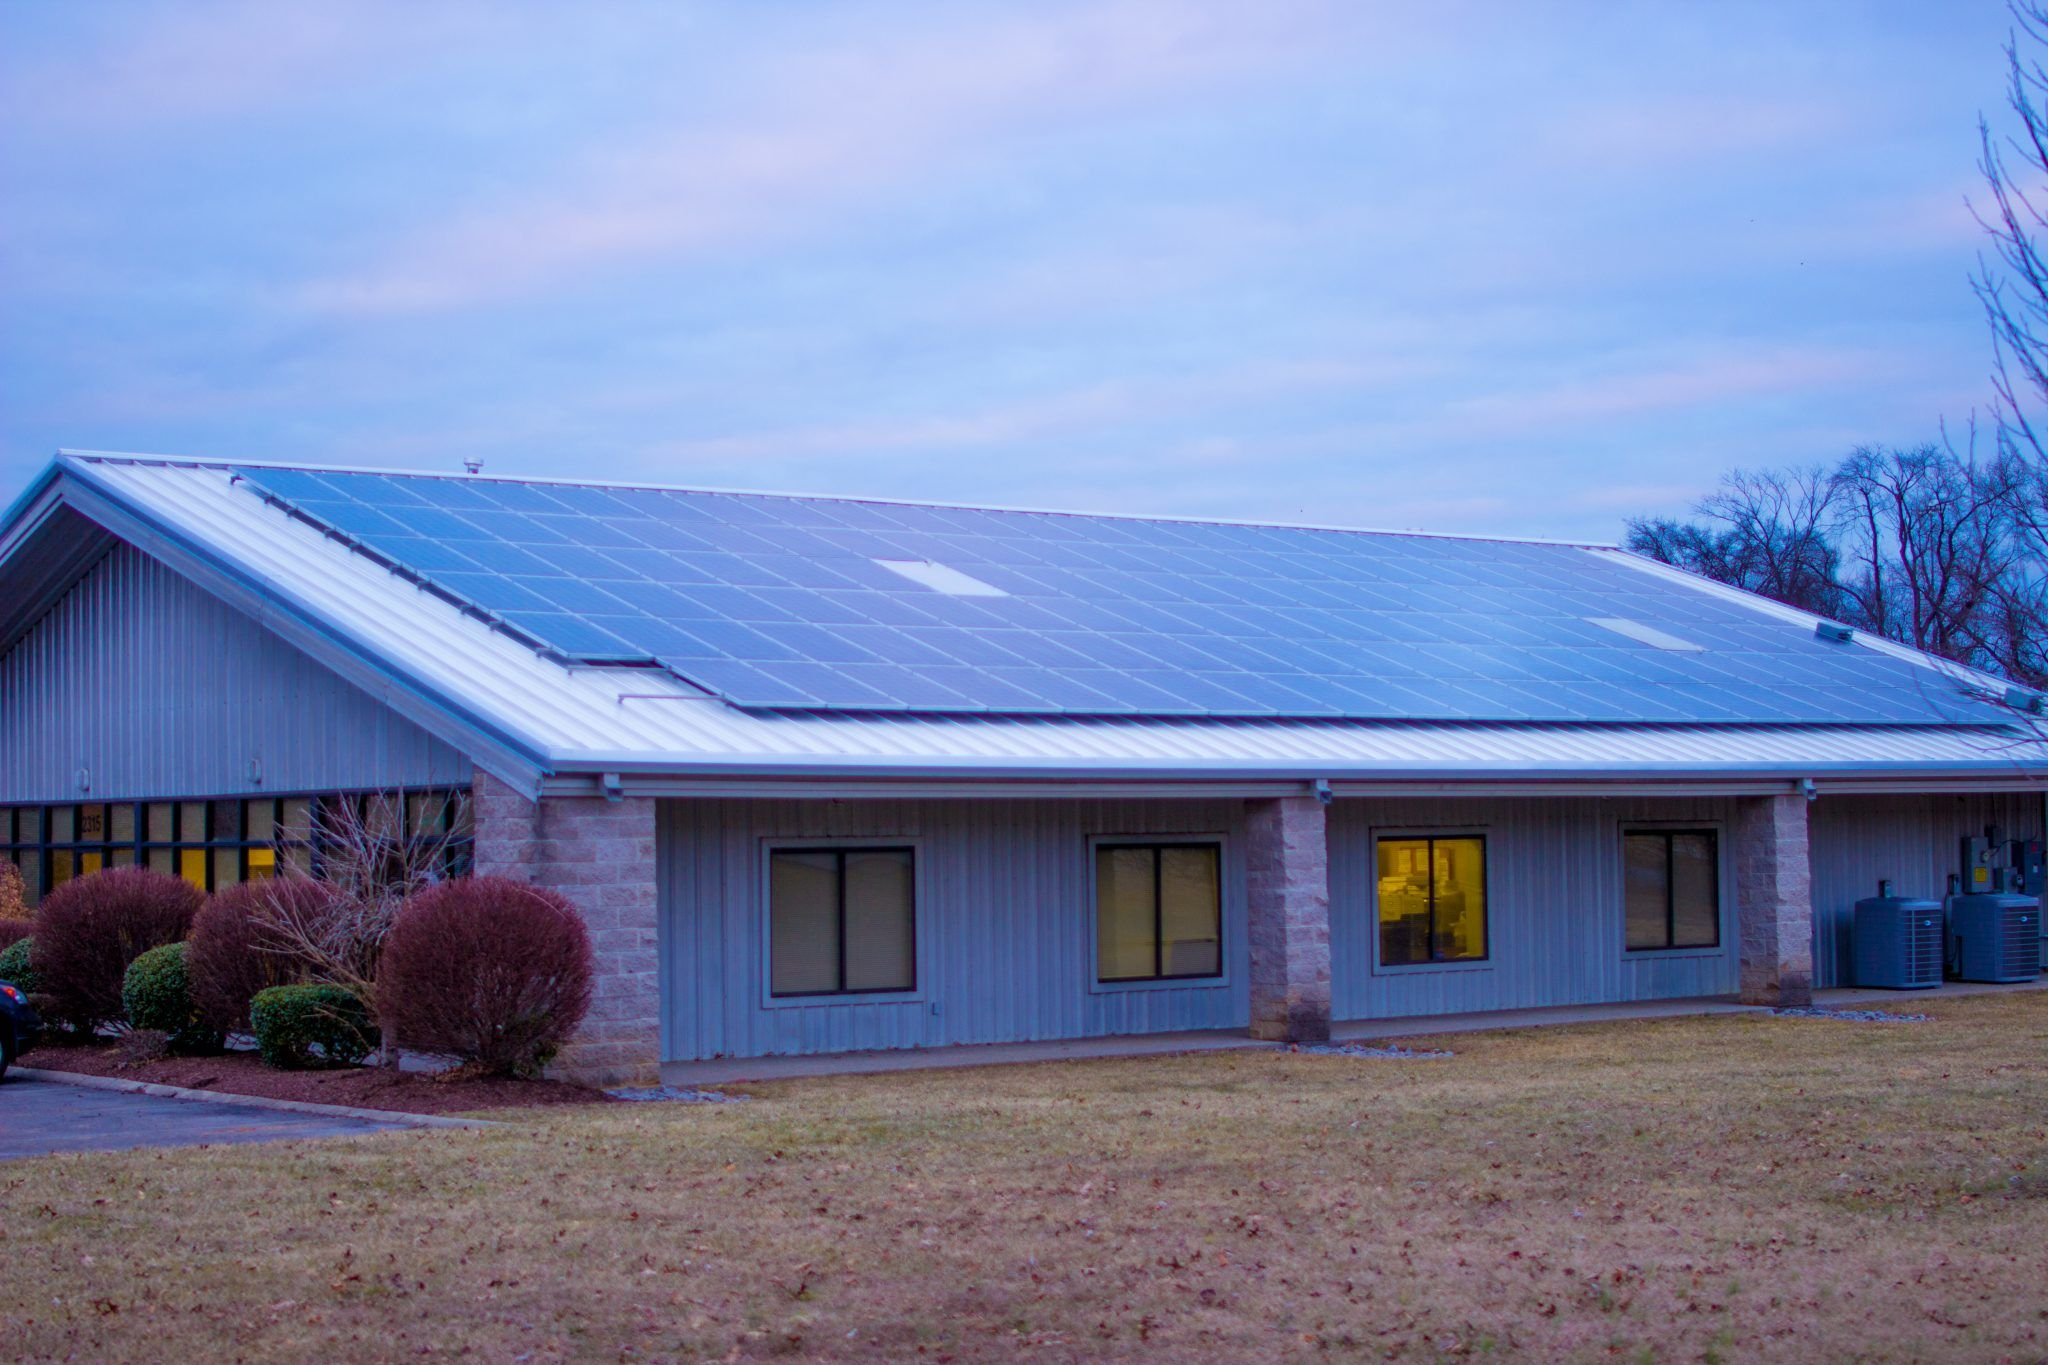 Standing Seam Metal Roof with Solar panels